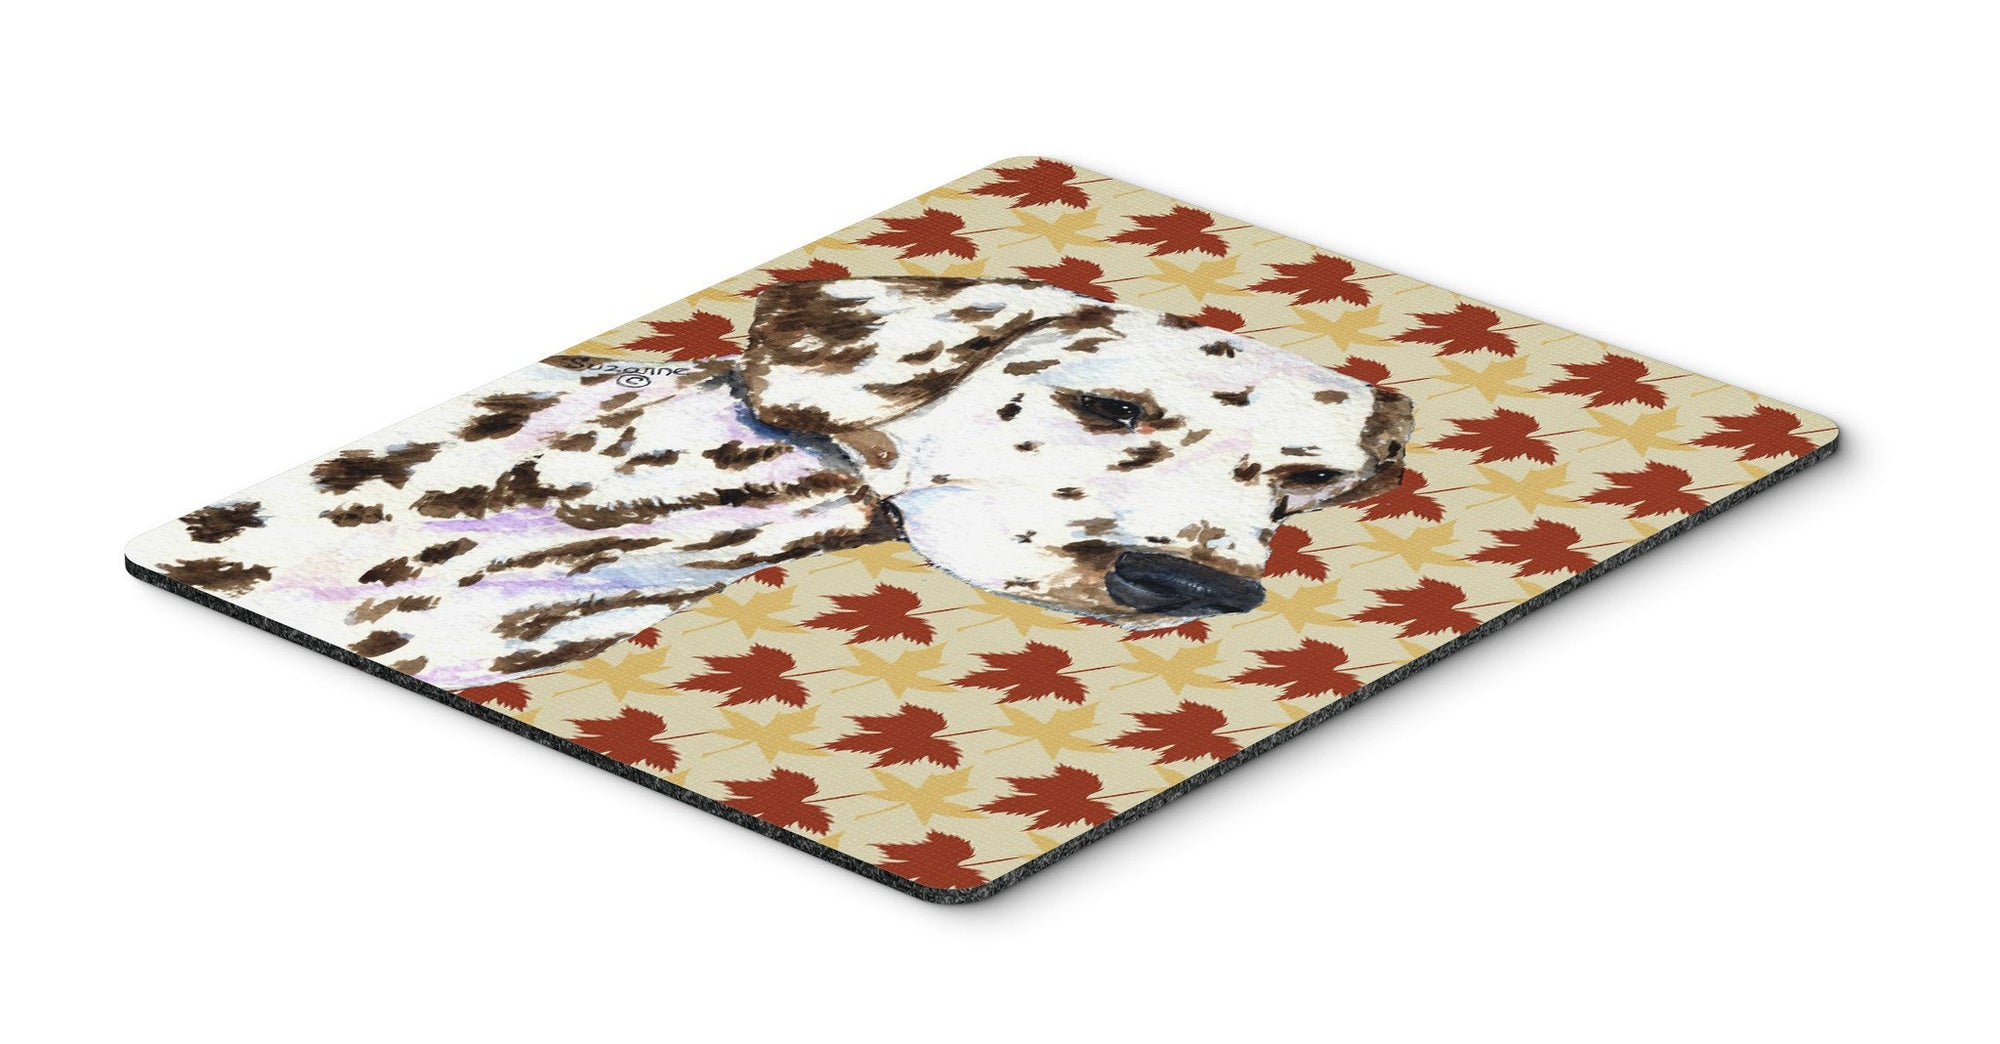 Dalmatian Fall Leaves Portrait Mouse Pad, Hot Pad or Trivet by Caroline's Treasures